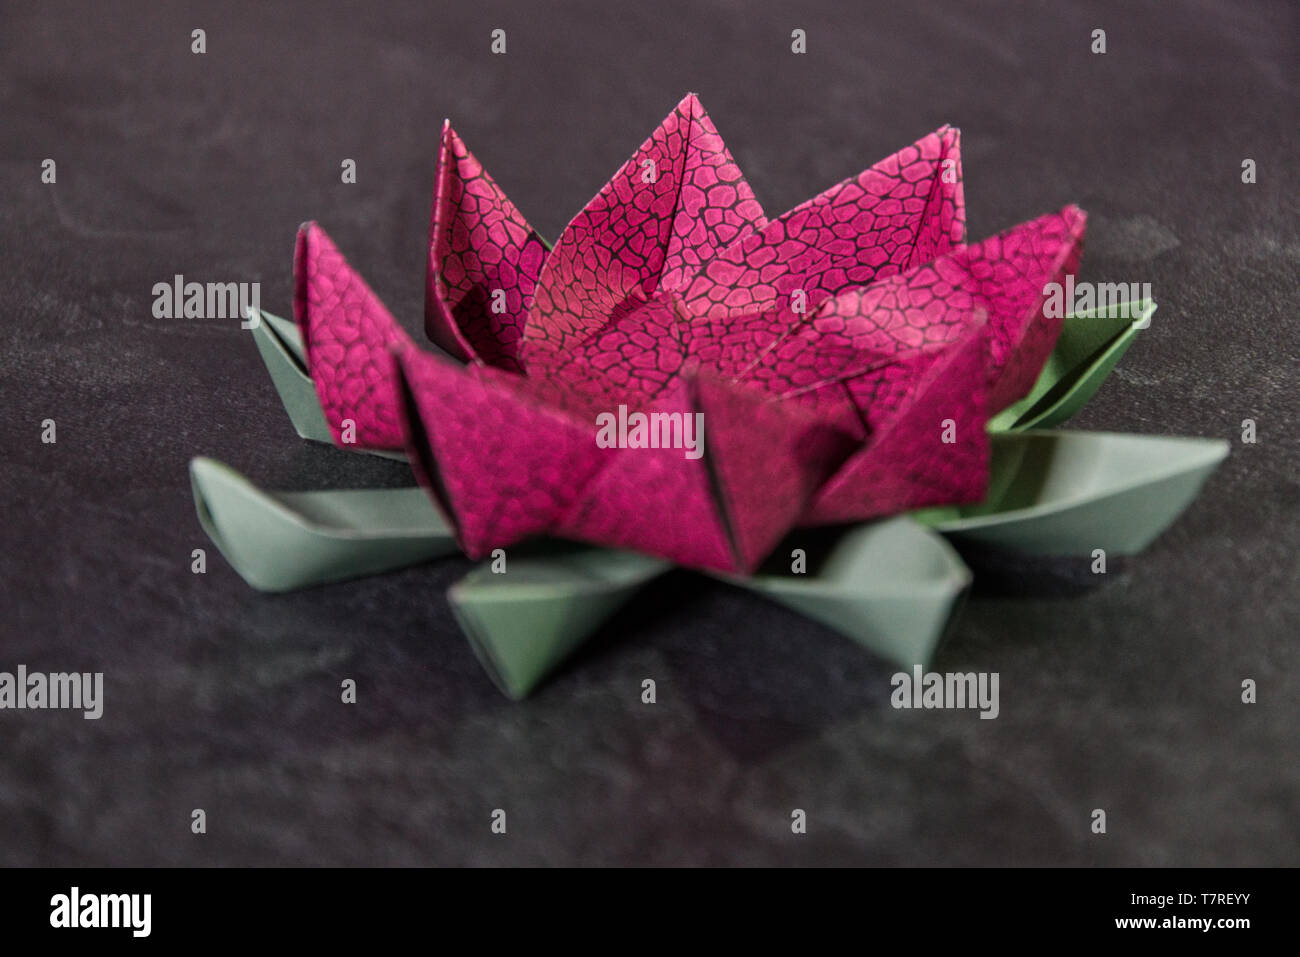 Origami Lotus Flower Easy Instructions - All About Craft | 957x1300